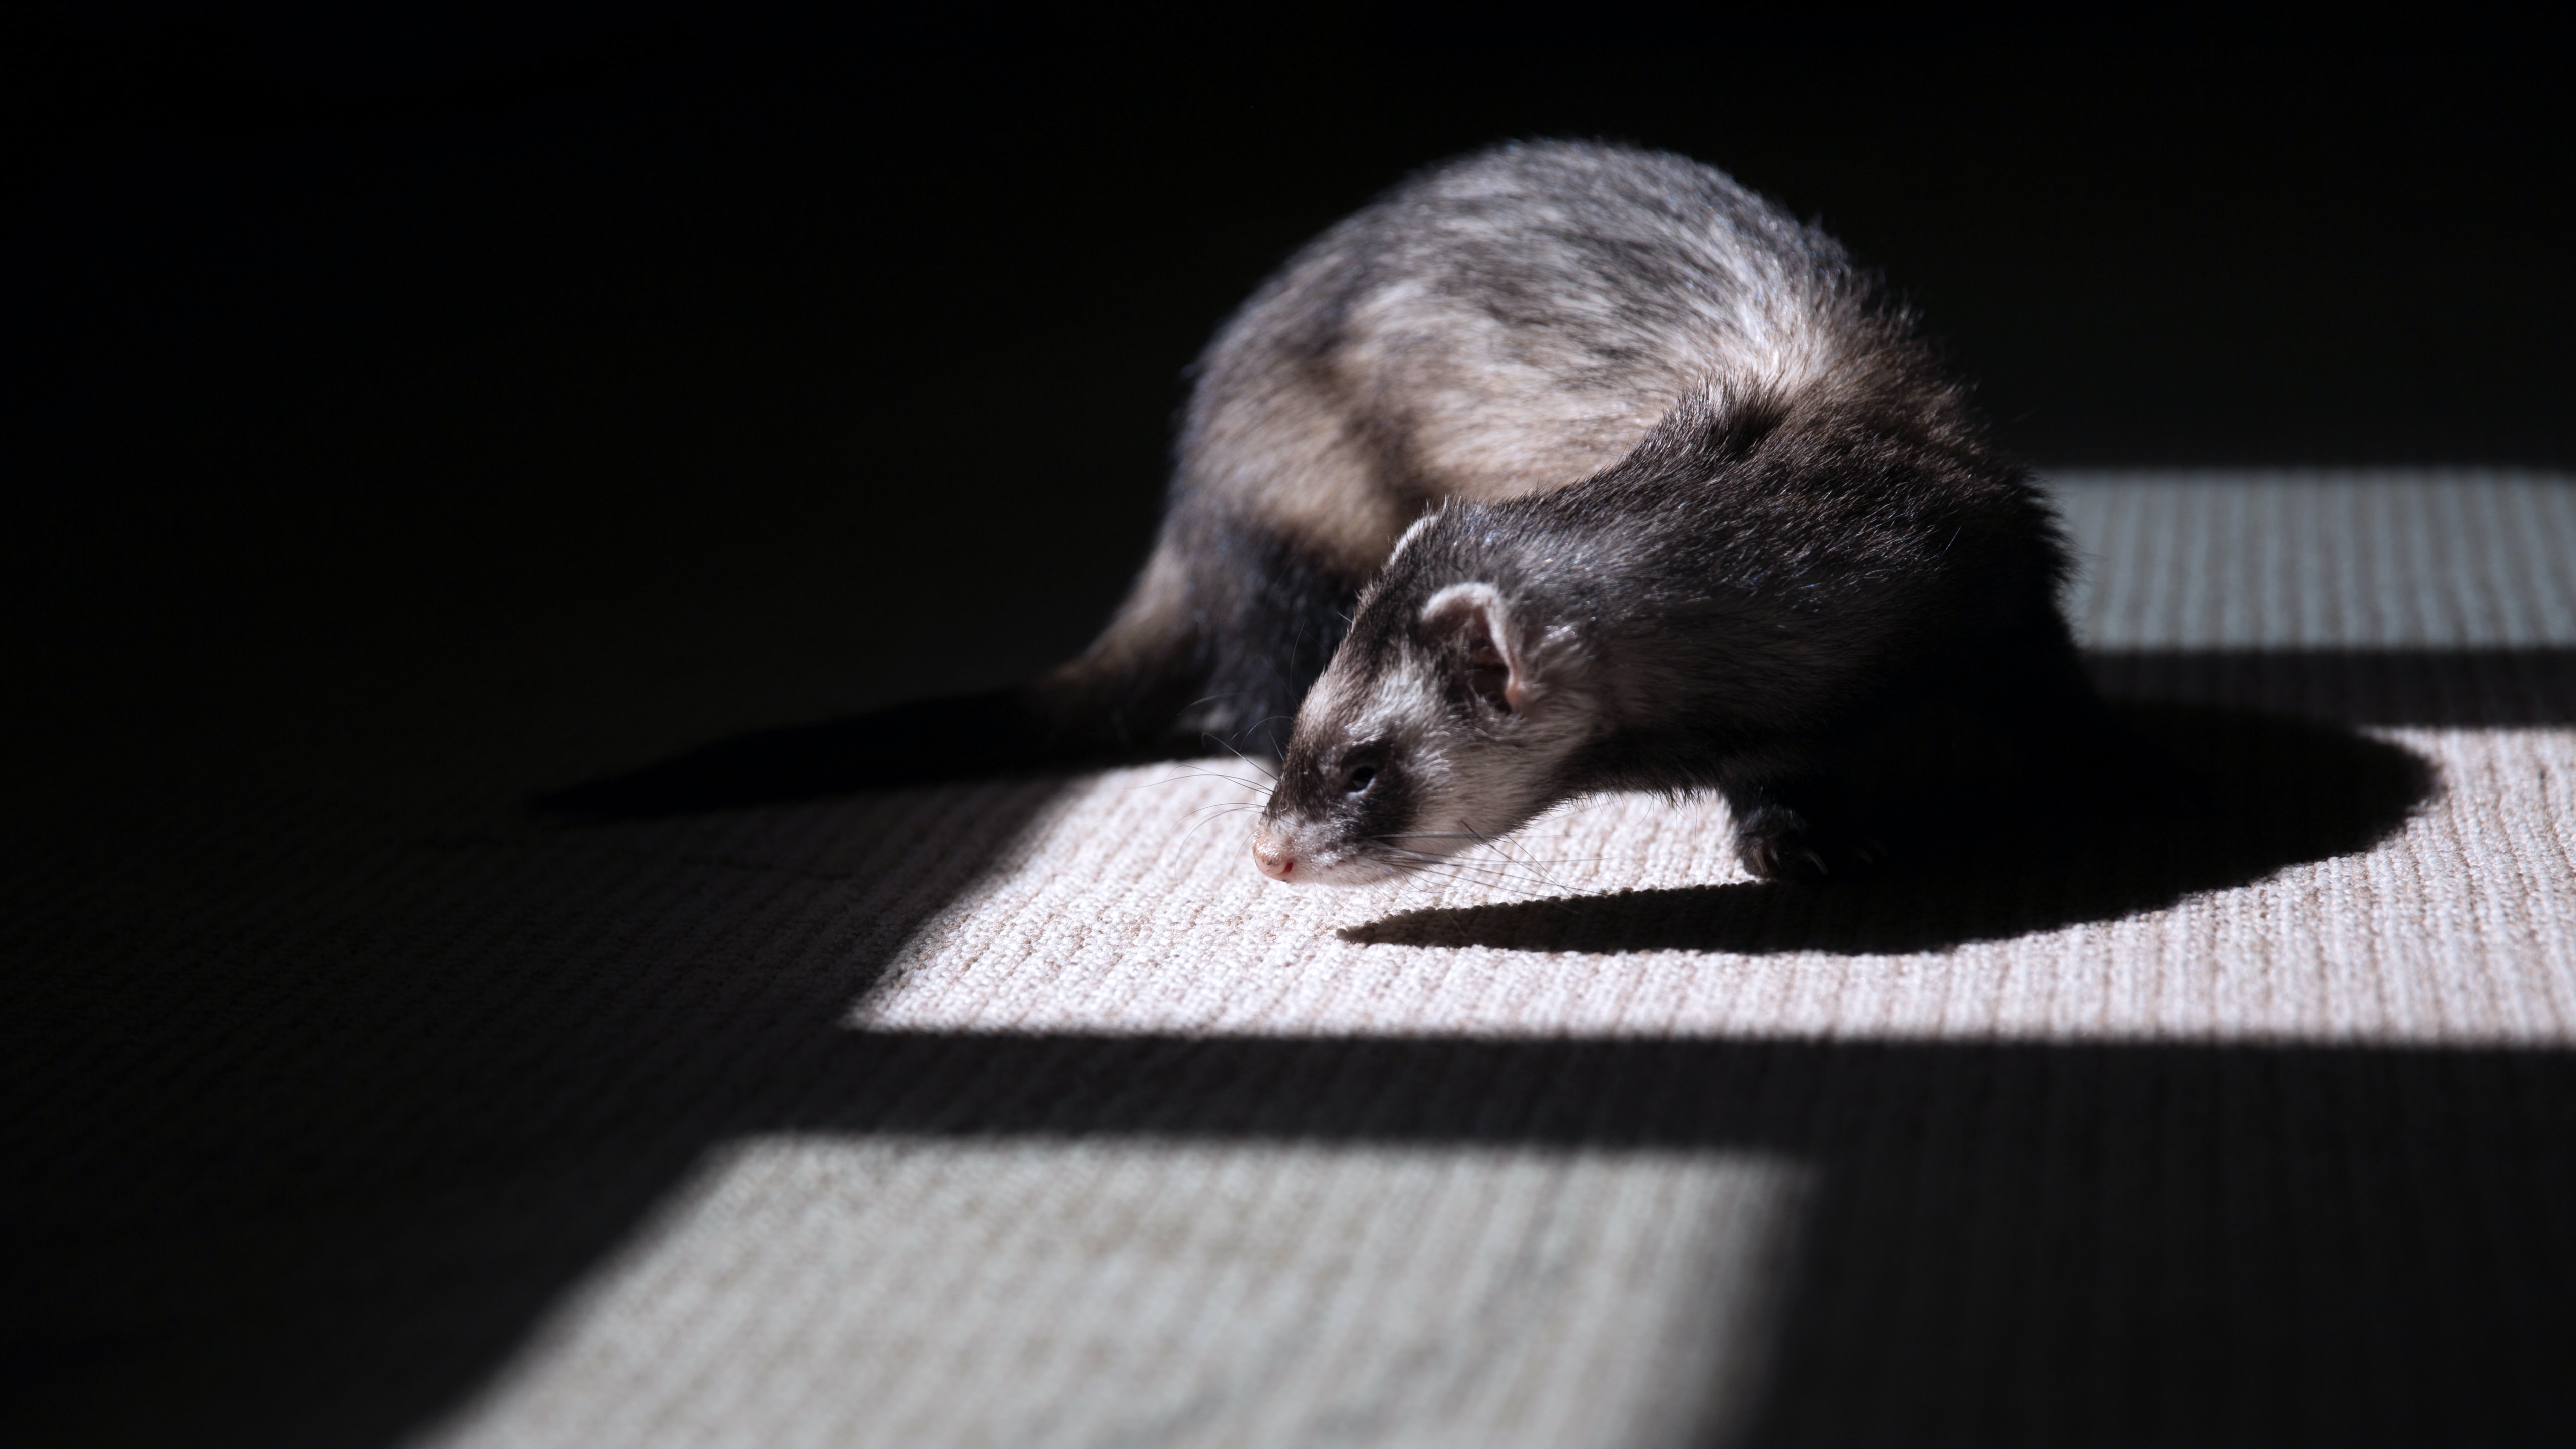 A ferret spotlighted by an illuminated window and partially covered in shadow